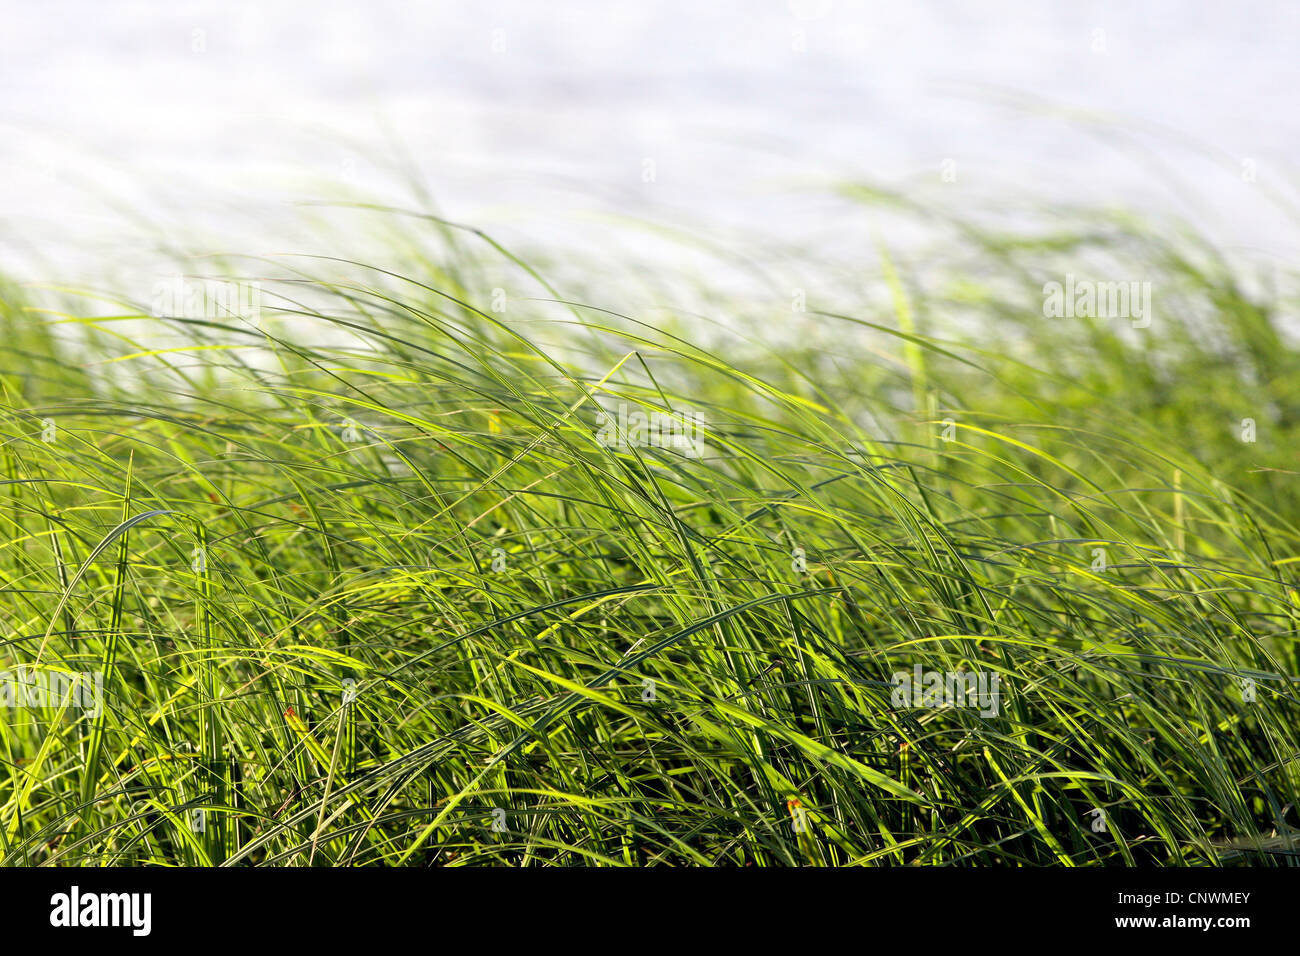 high grass in the wind, NRW - Stock Image